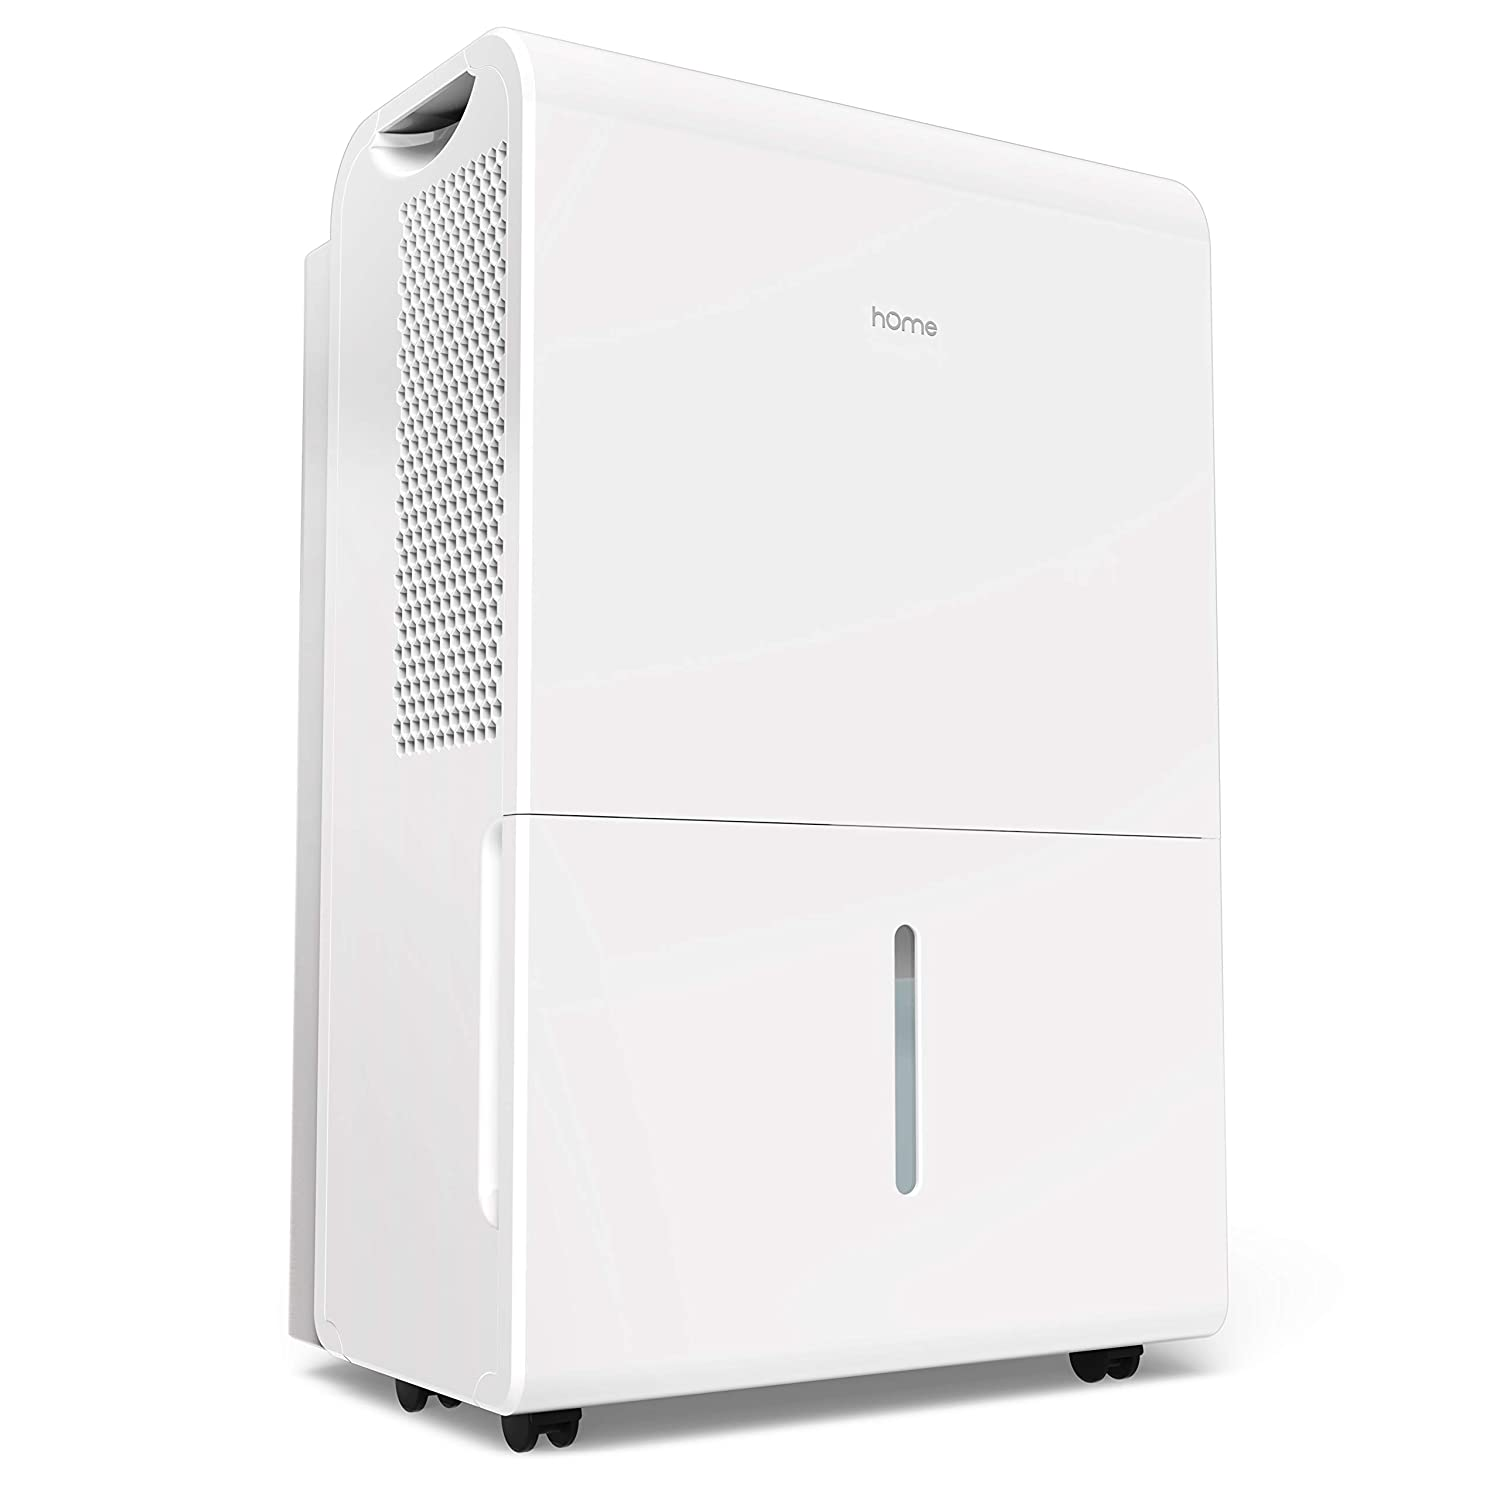 hOmeLabs 4000 Sq Ft Dehumidifier 70 Pint Energy Star